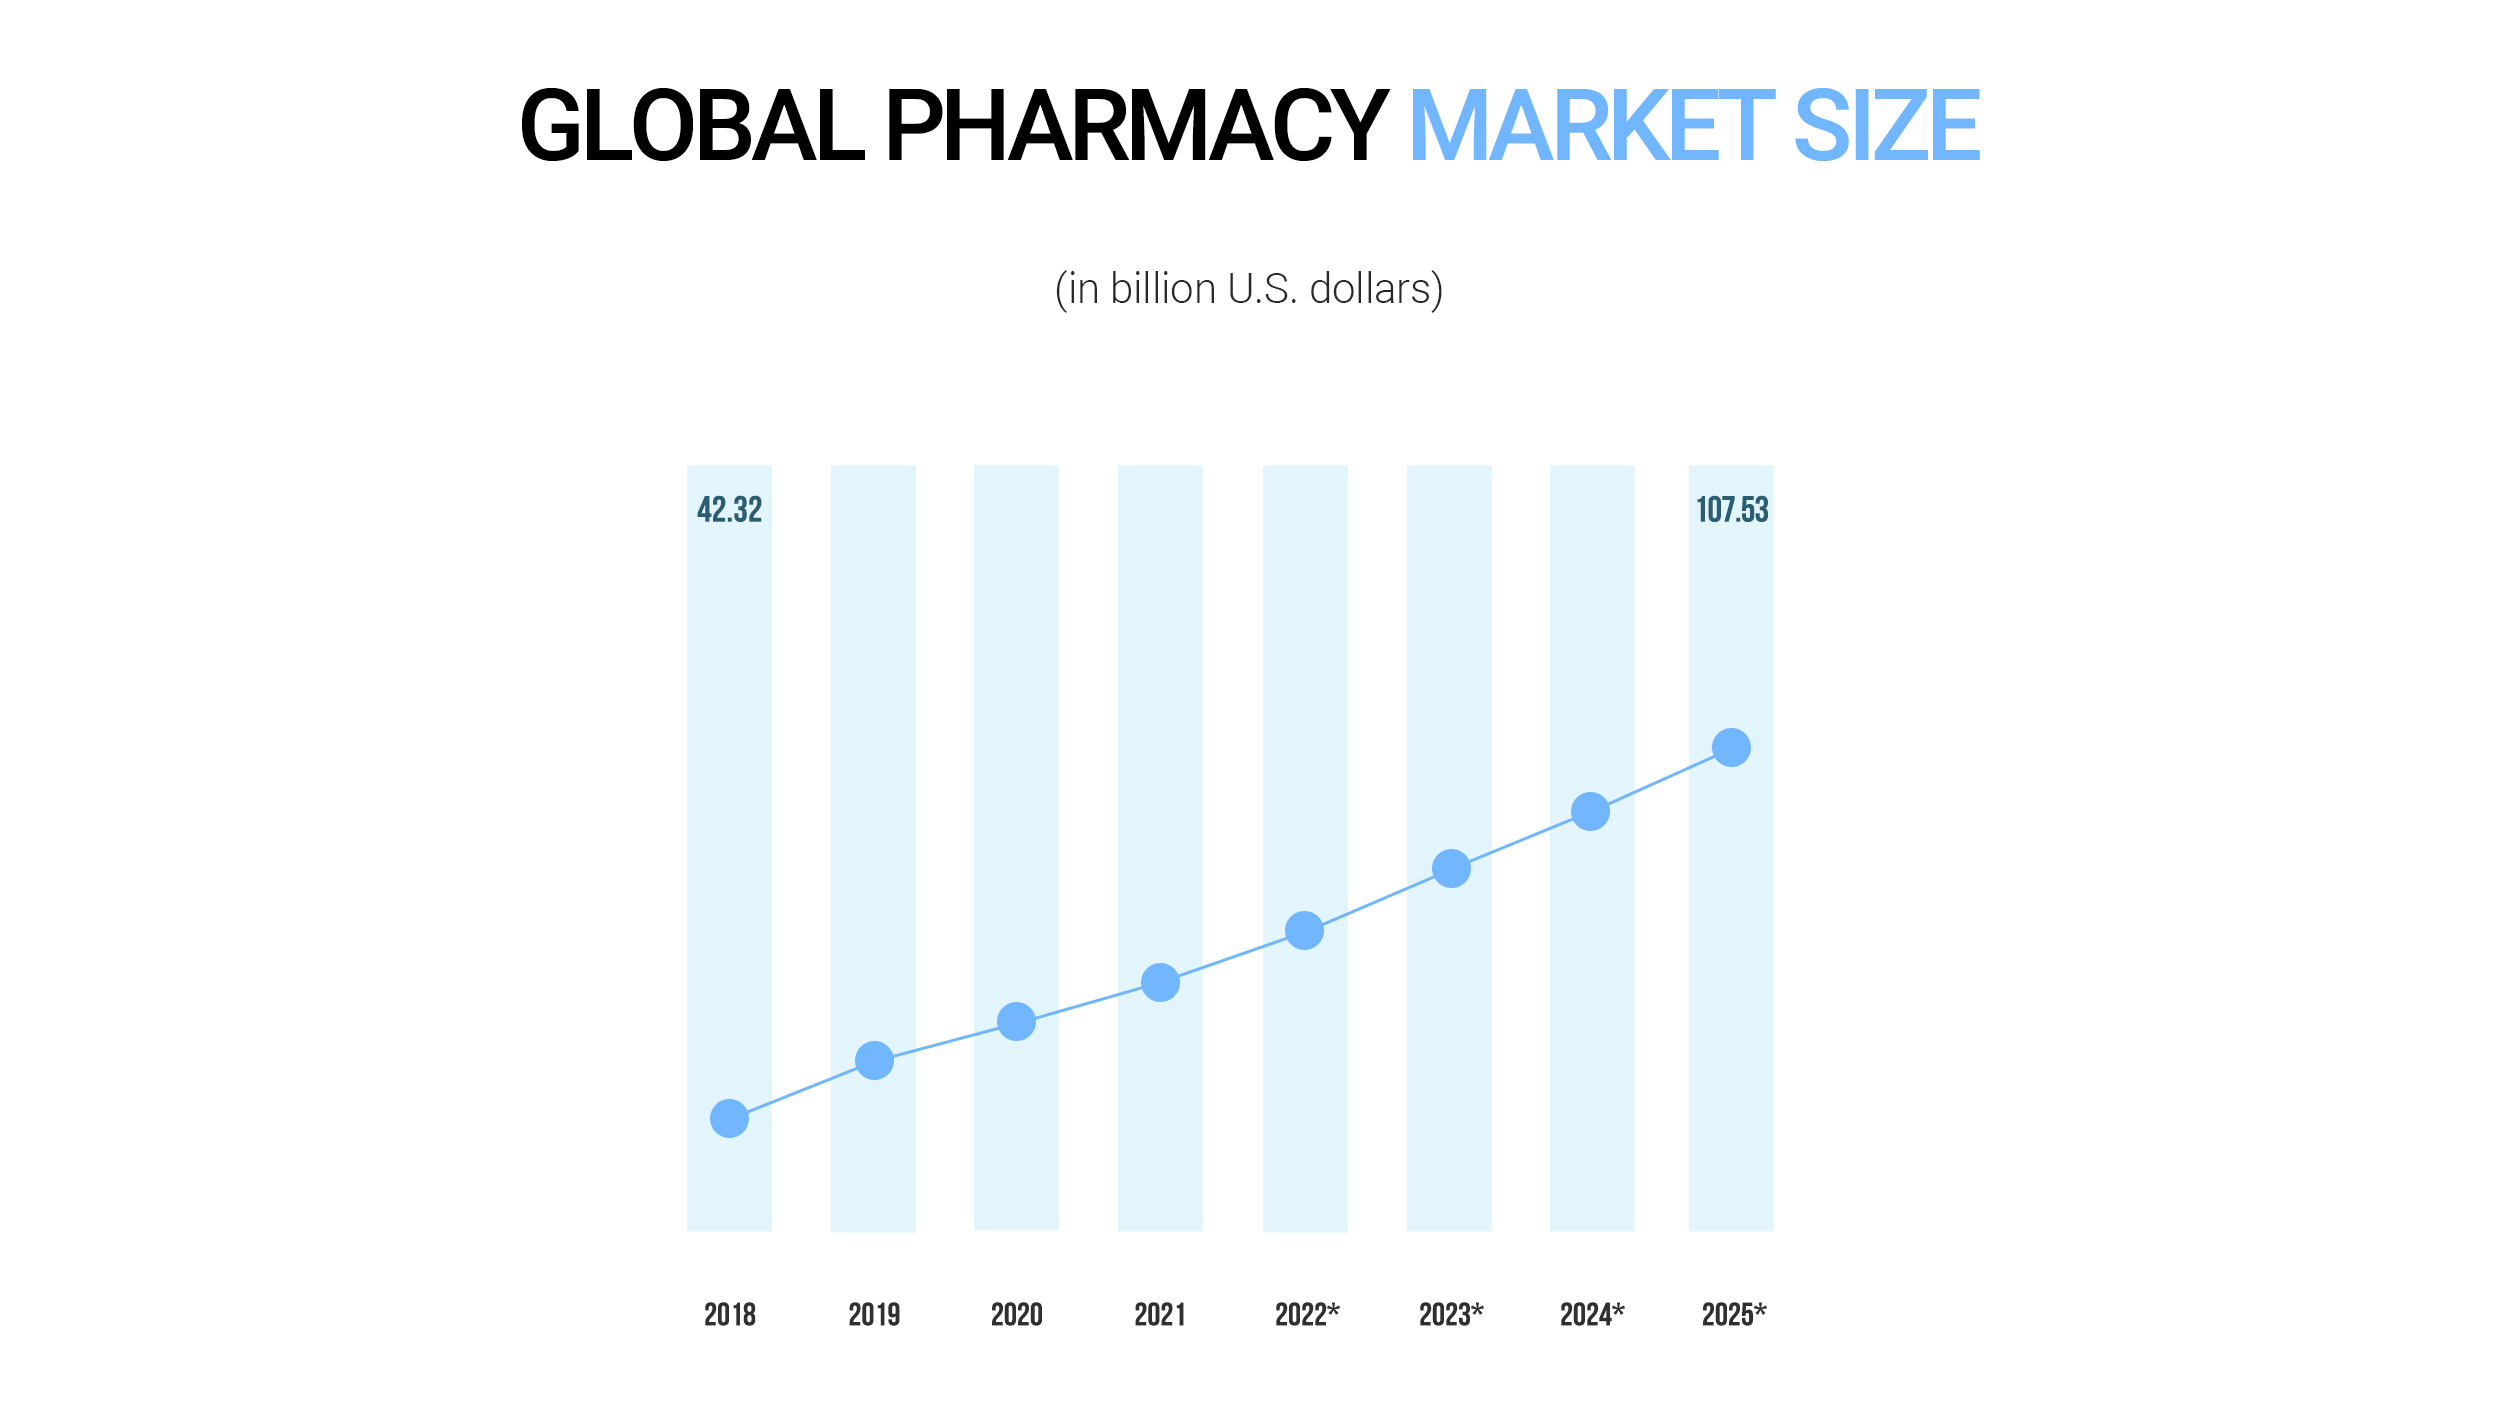 Global pharmacy market size